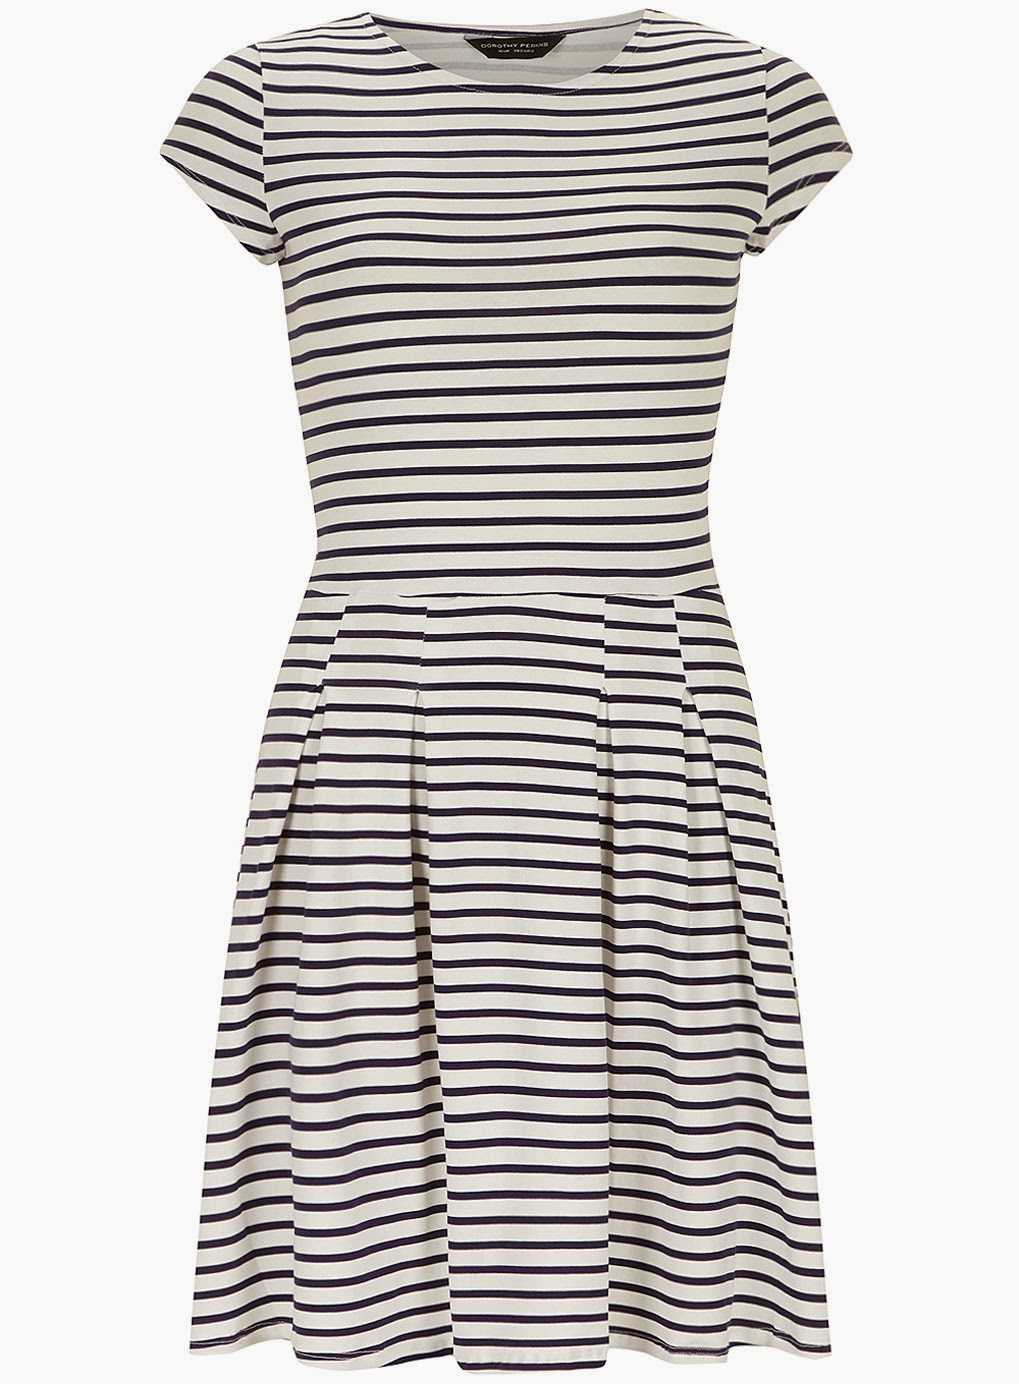 dorothy perkins stripey dress